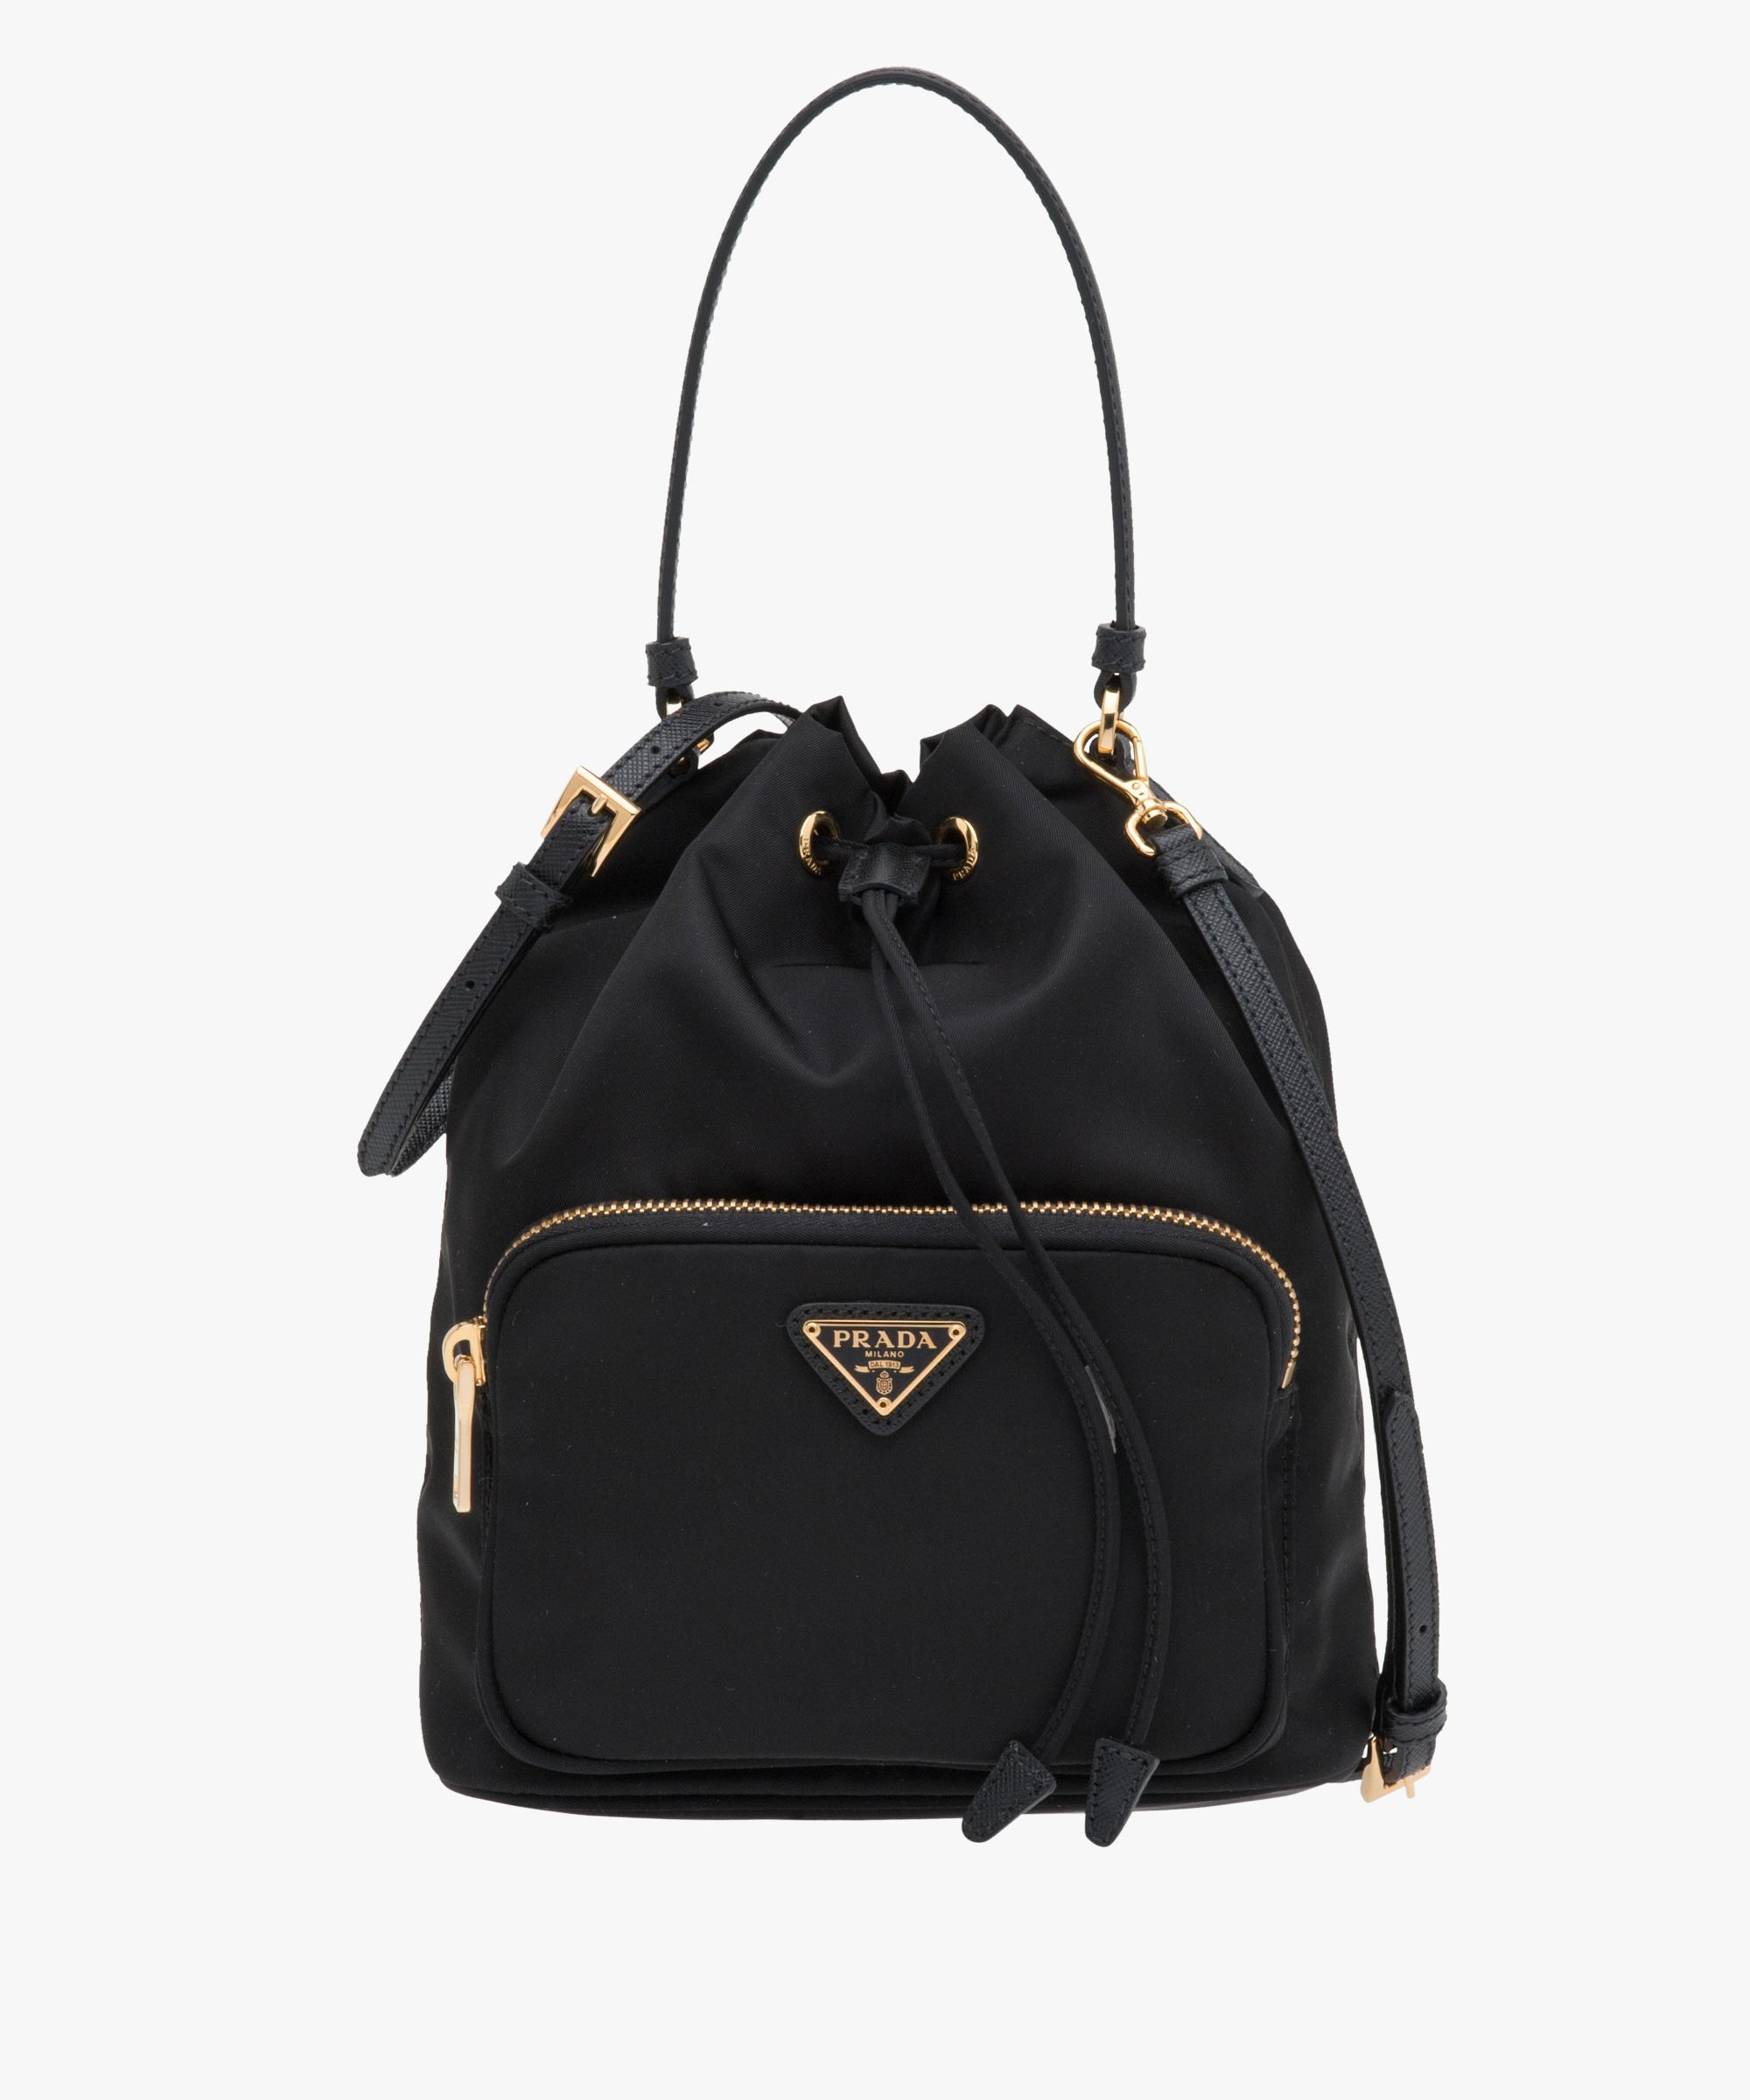 d272e62dcc40 ... promo code where can i buy lyst prada fabric shoulder bag in black  b761c 5abb2 d7f71